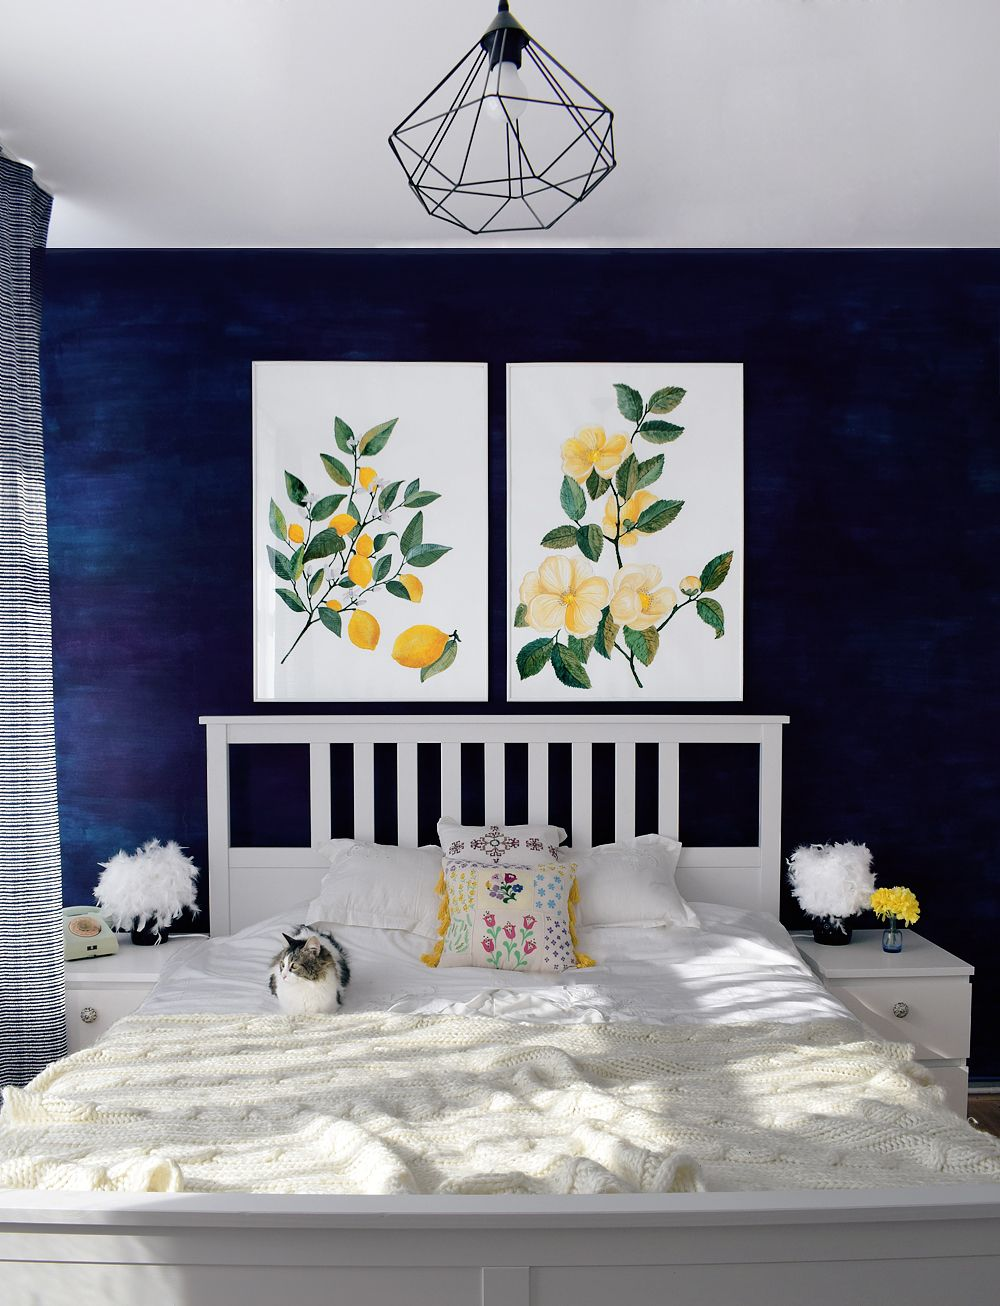 Navy bedroom decor (With images)   Navy bedroom decor ...